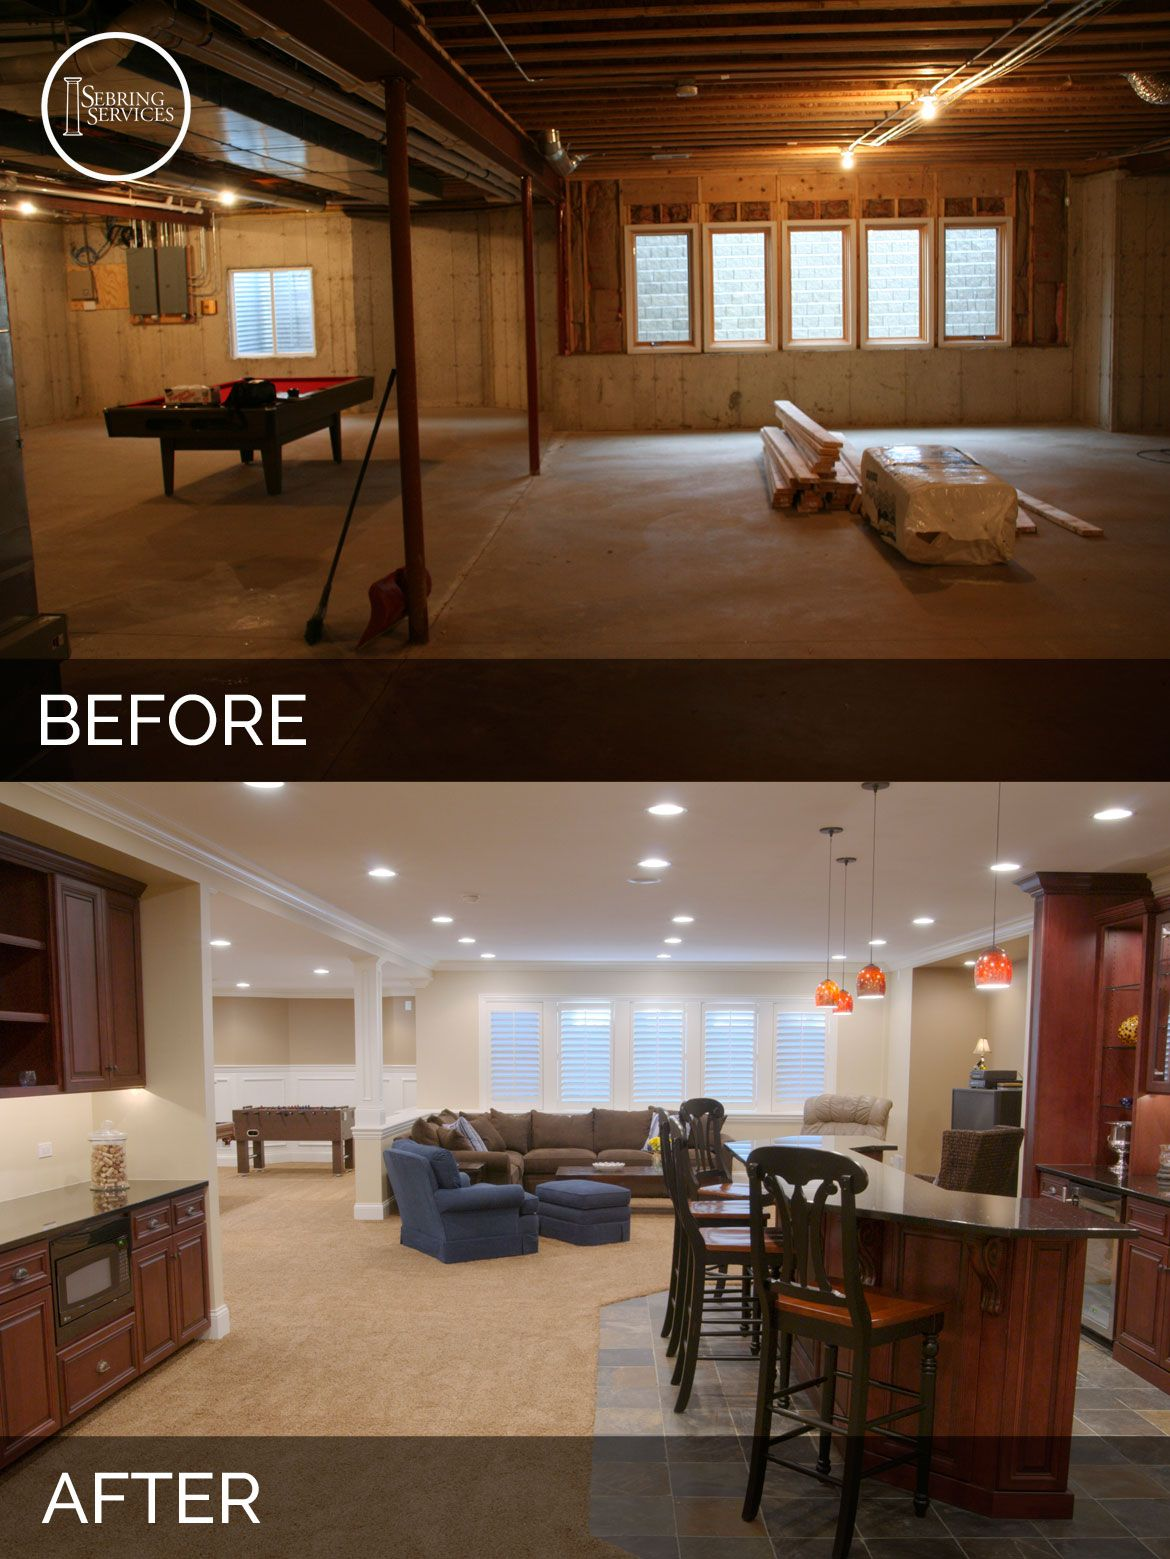 Merveilleux Before And After Basement Remodeling   Sebring Services